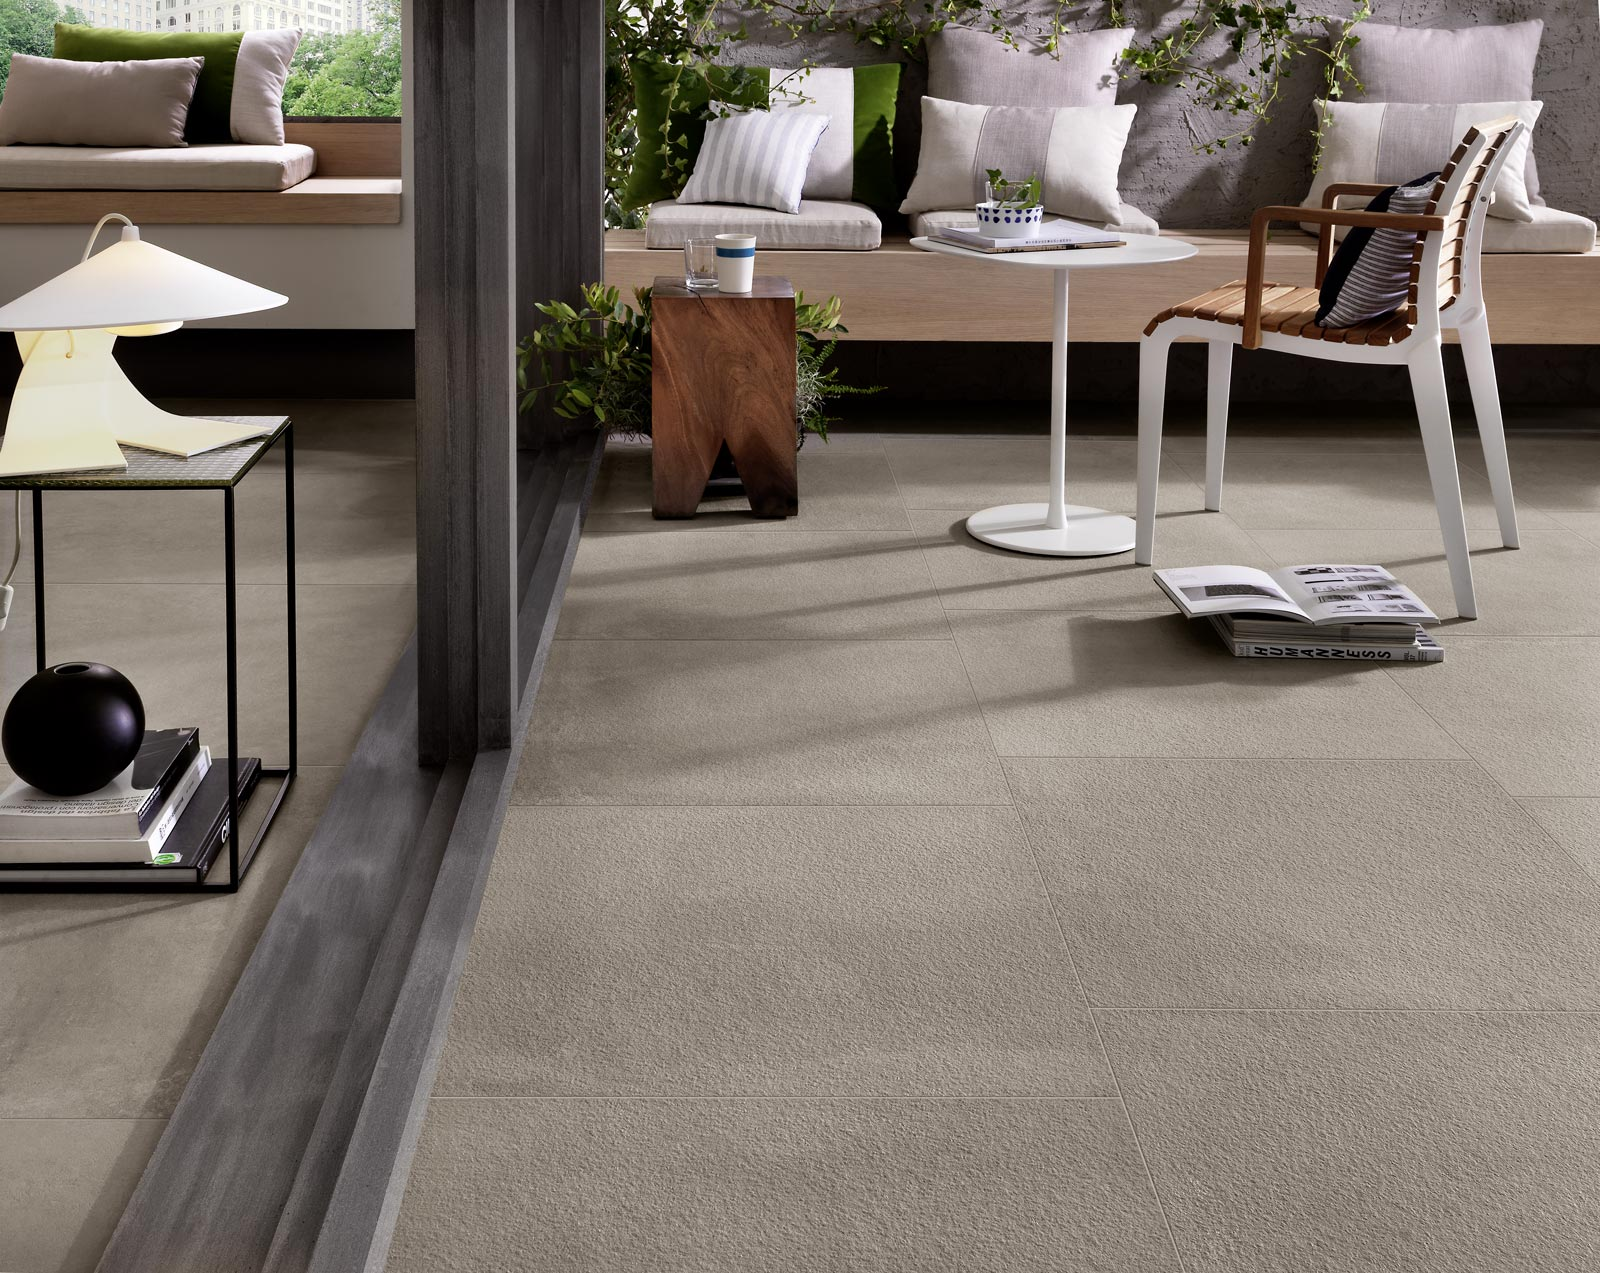 Indoor outdoor flooring and tiles ragno for Indoor outdoor flooring options